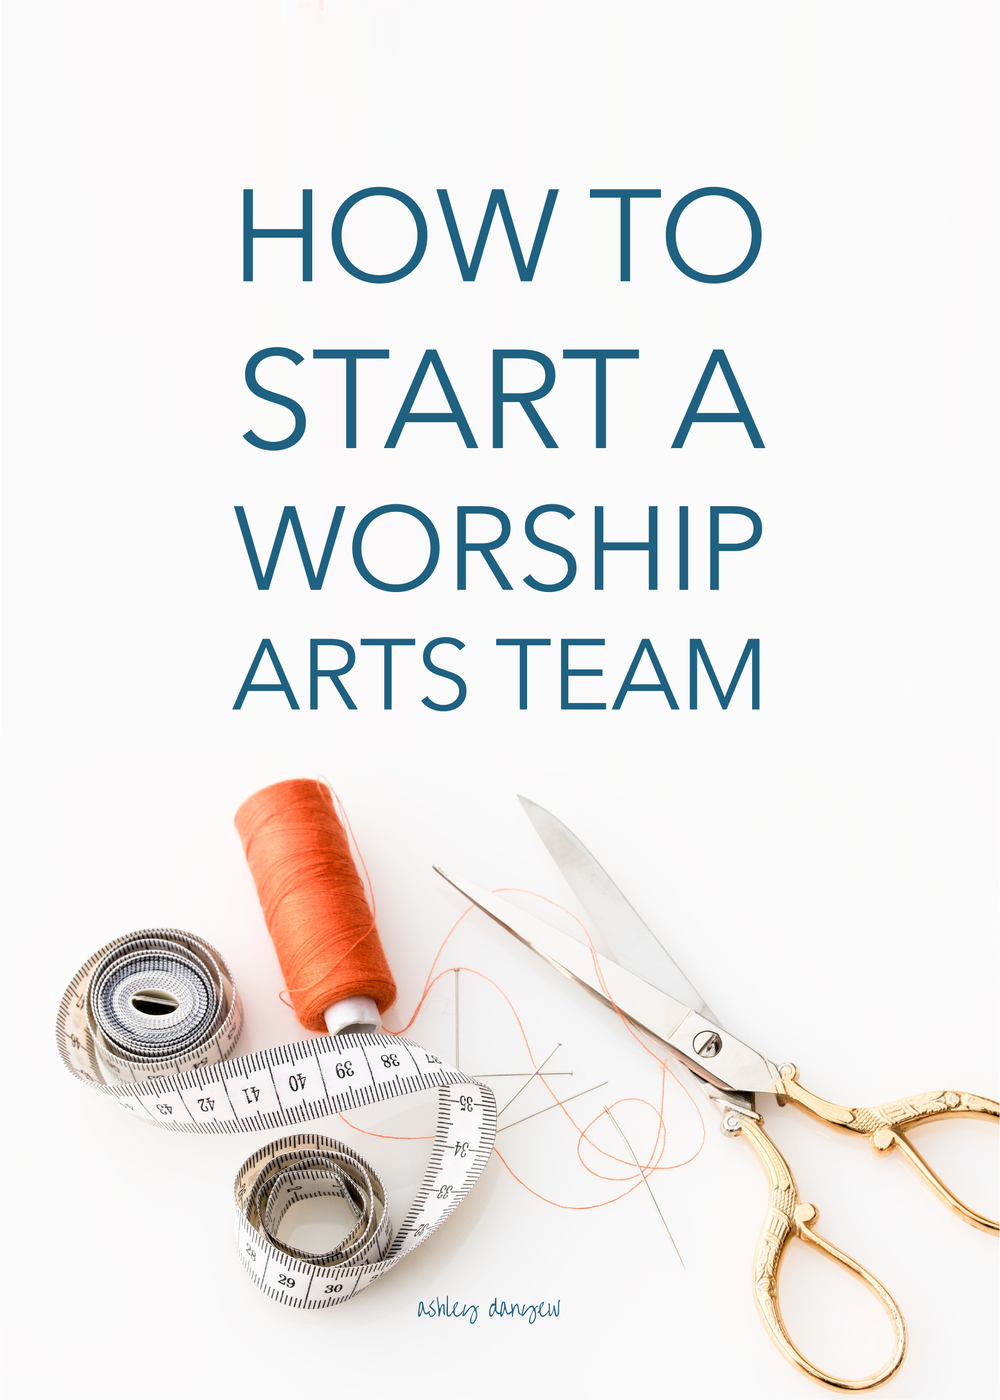 Copy of How to Start a Worship Arts Team